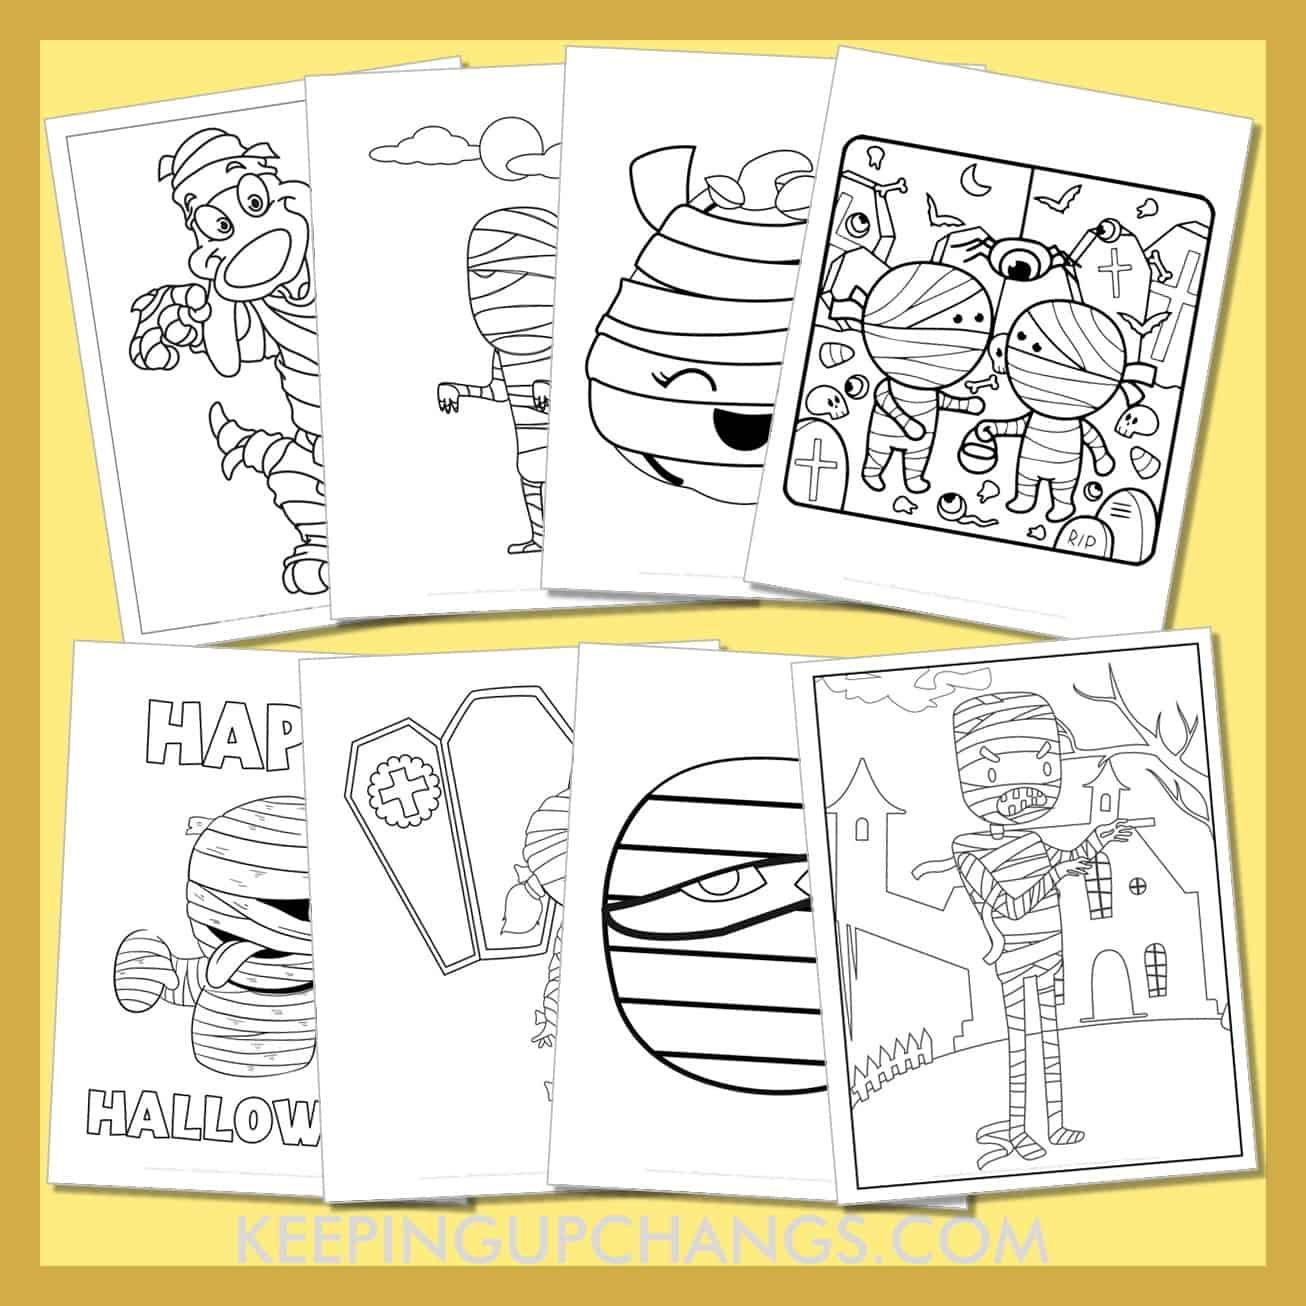 mummy colouring sheets including cute kids, happy halloween and more.